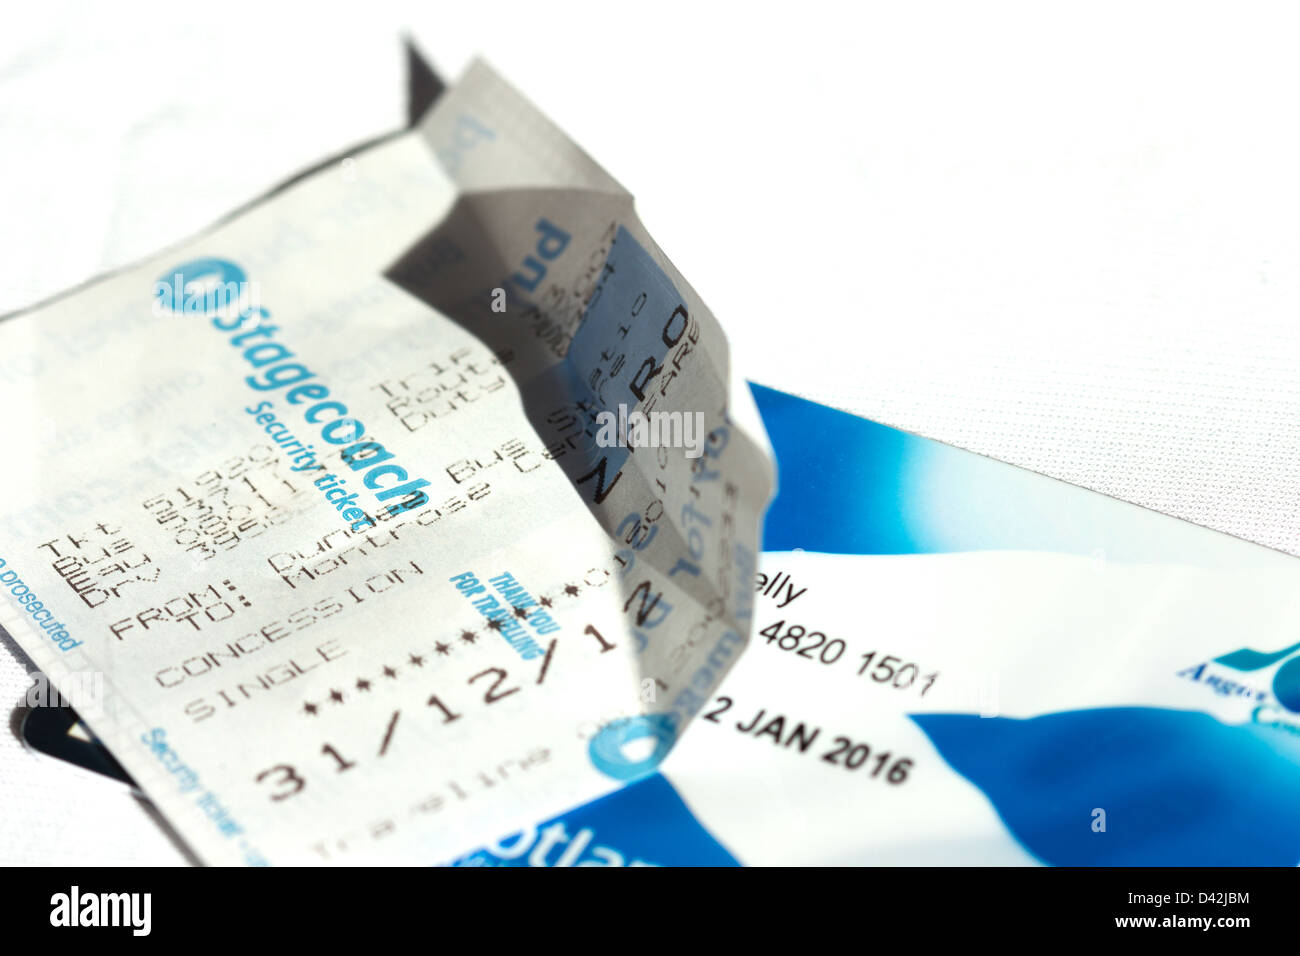 Bus ticket showing Zero fare cost and Bus pass for senior citizen Scotland UK - Stock Image